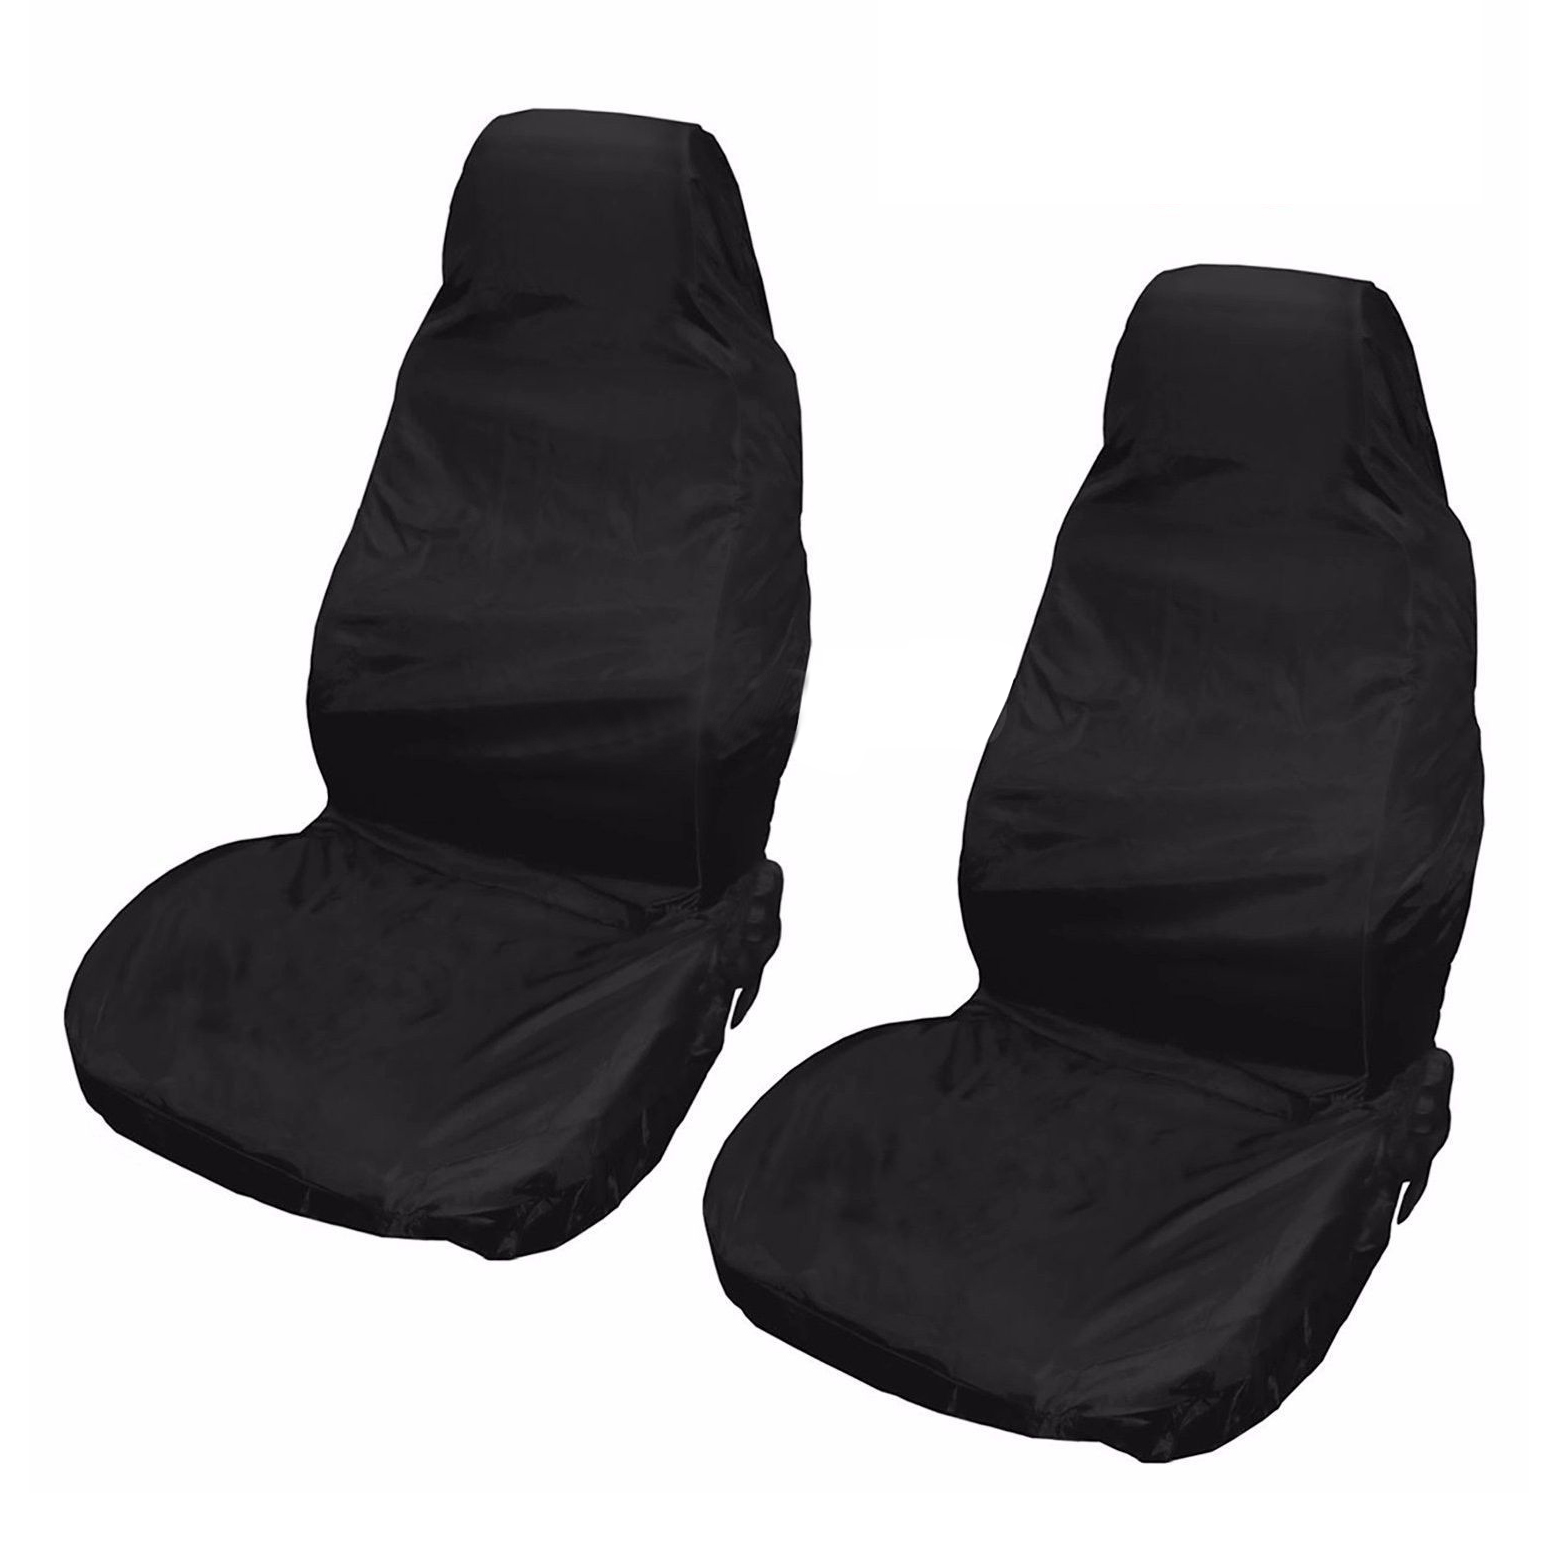 Audi A4 Car Front Seat Protectors Covers Heavy Duty Waterproof Cover Blue Pair